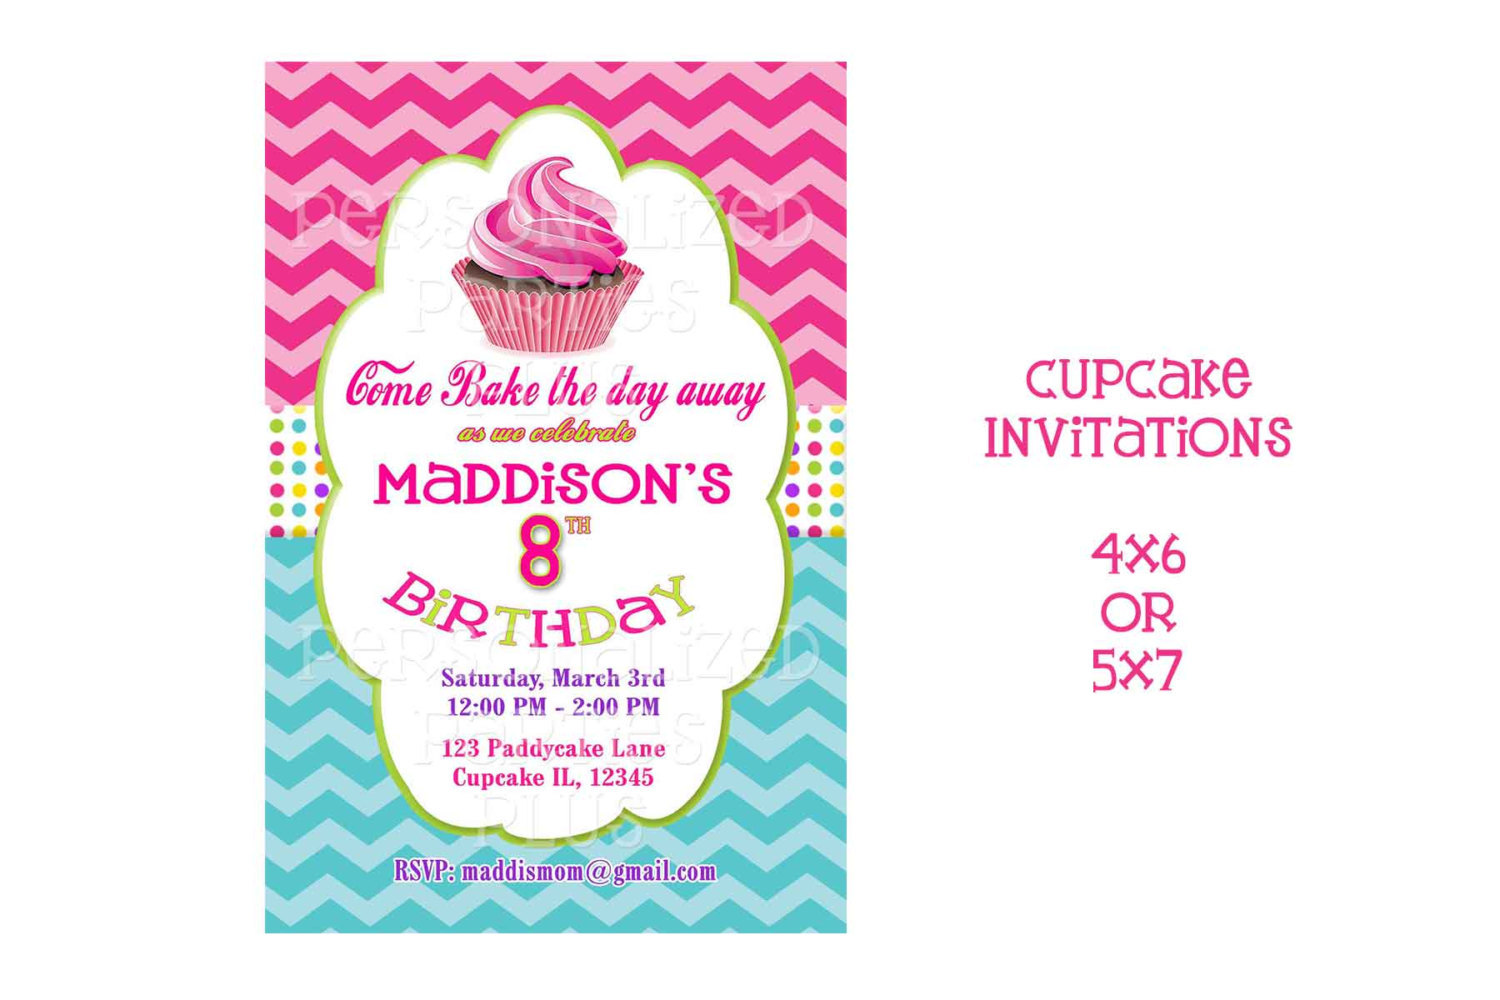 Cupcake baking party Invitation in chevron print and polka dots